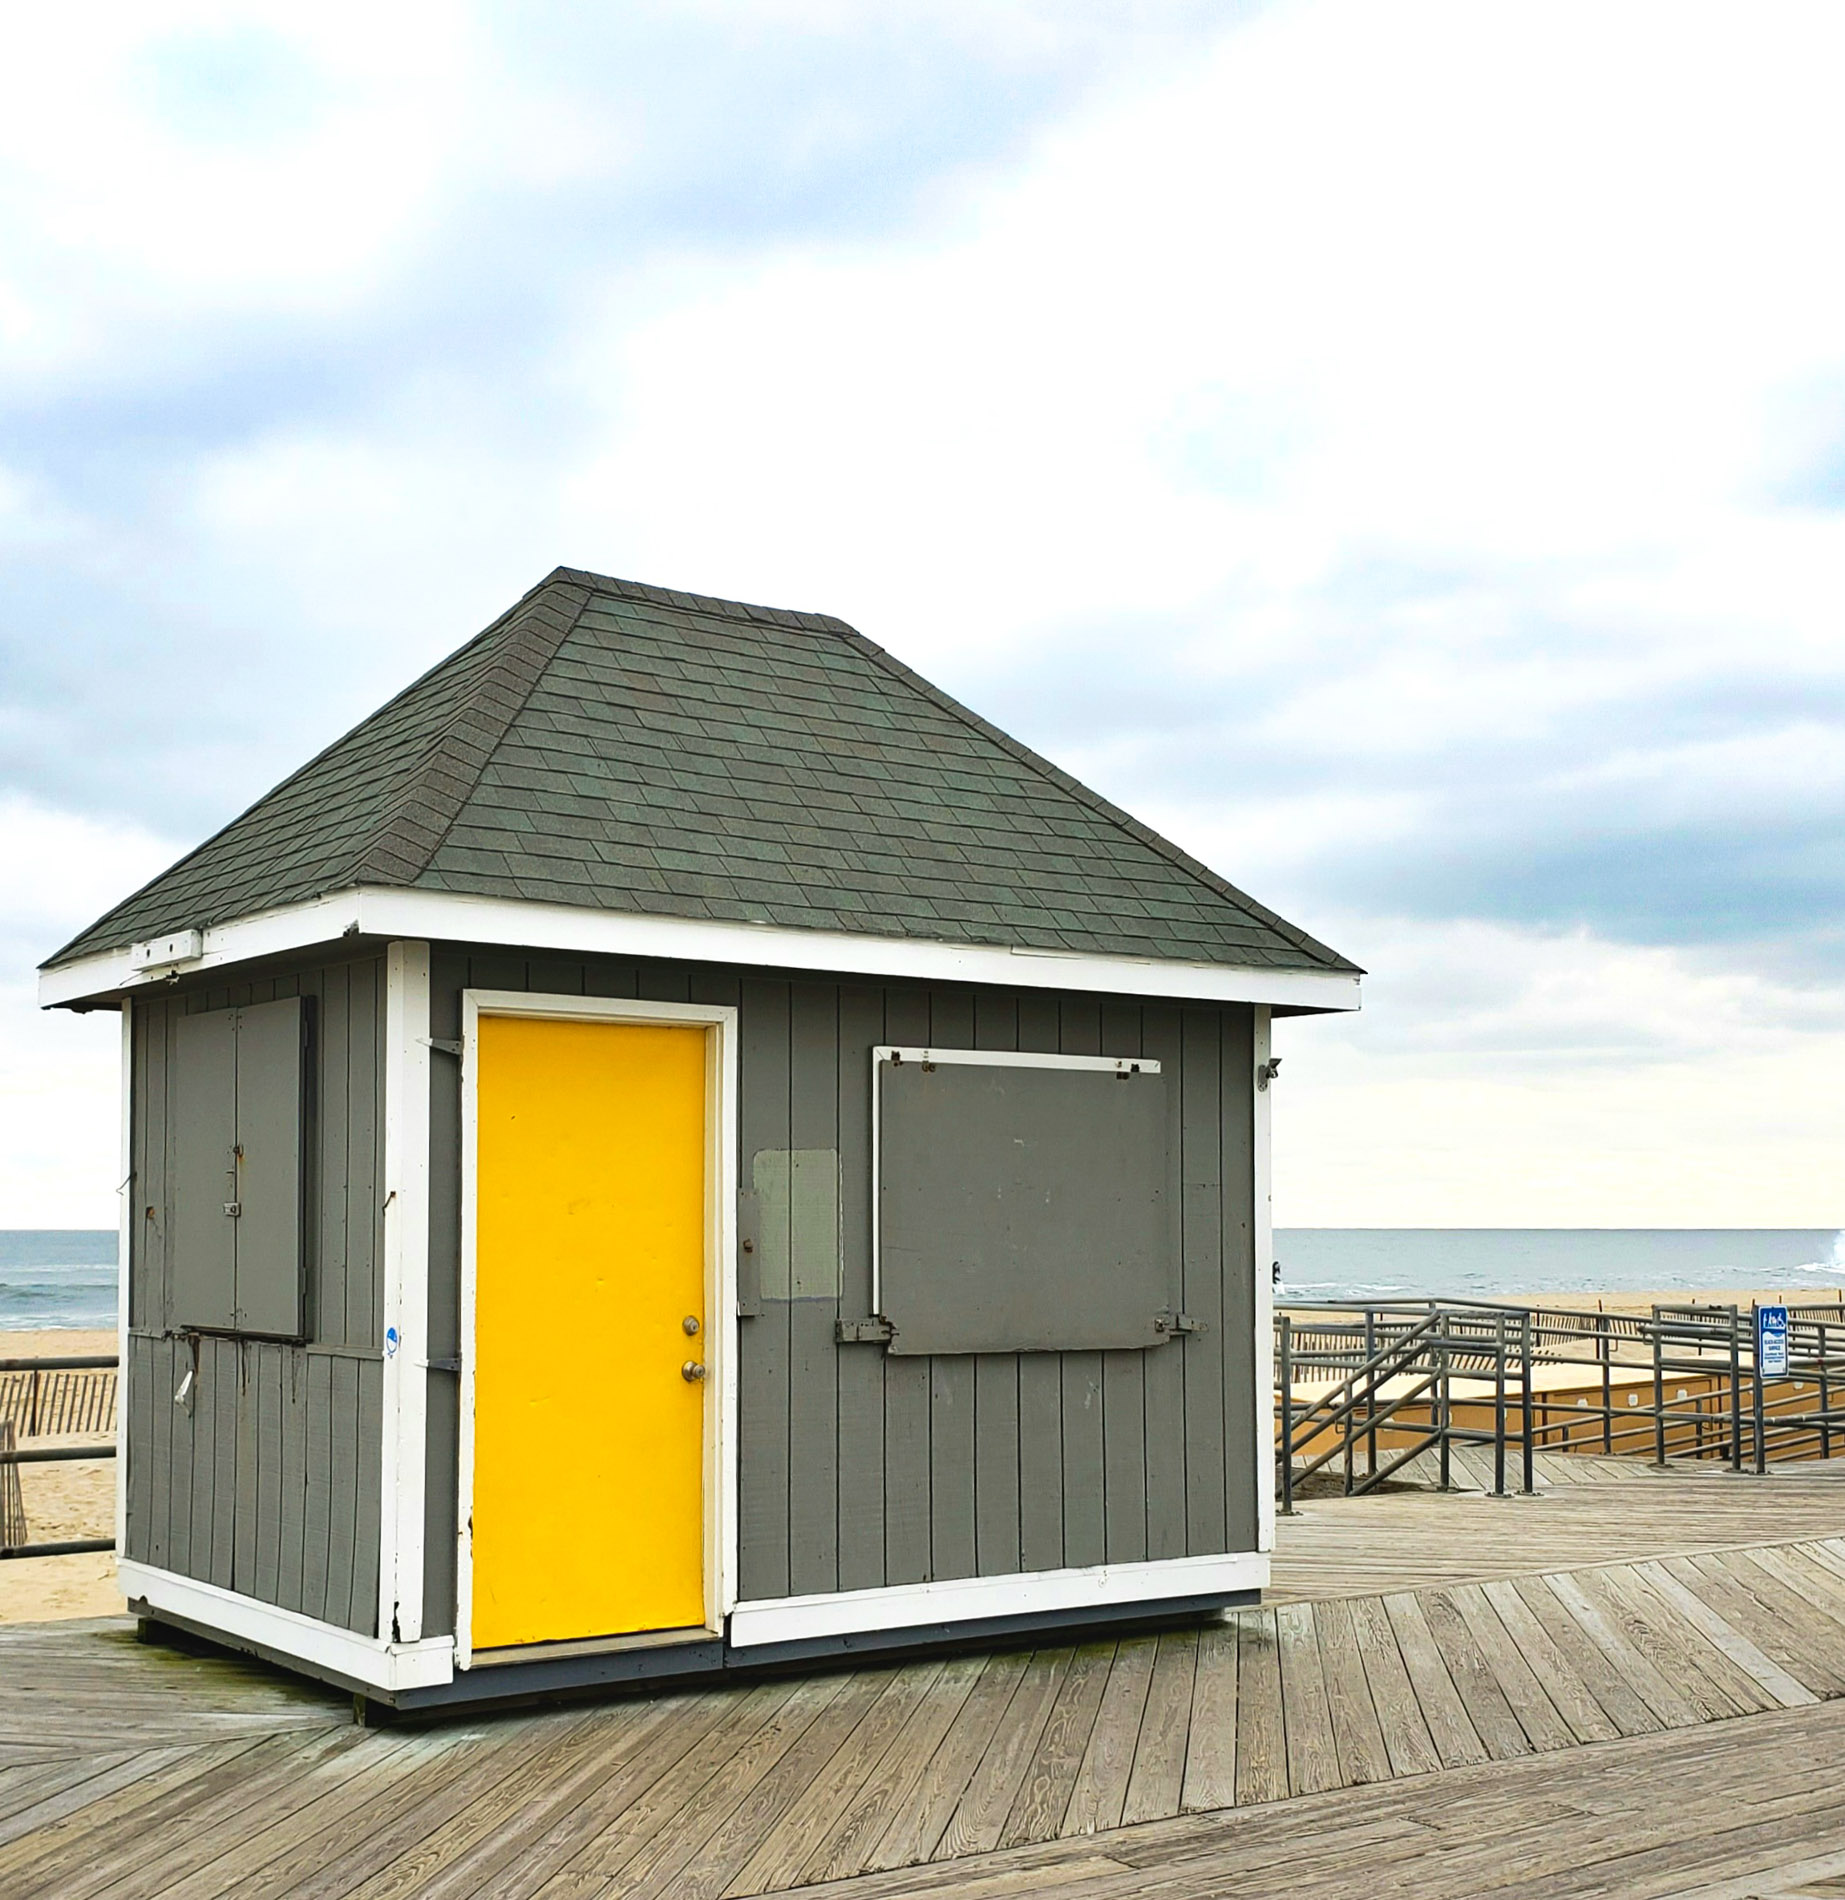 Grey shack with yellow door in front of ocean on partly cloudy day